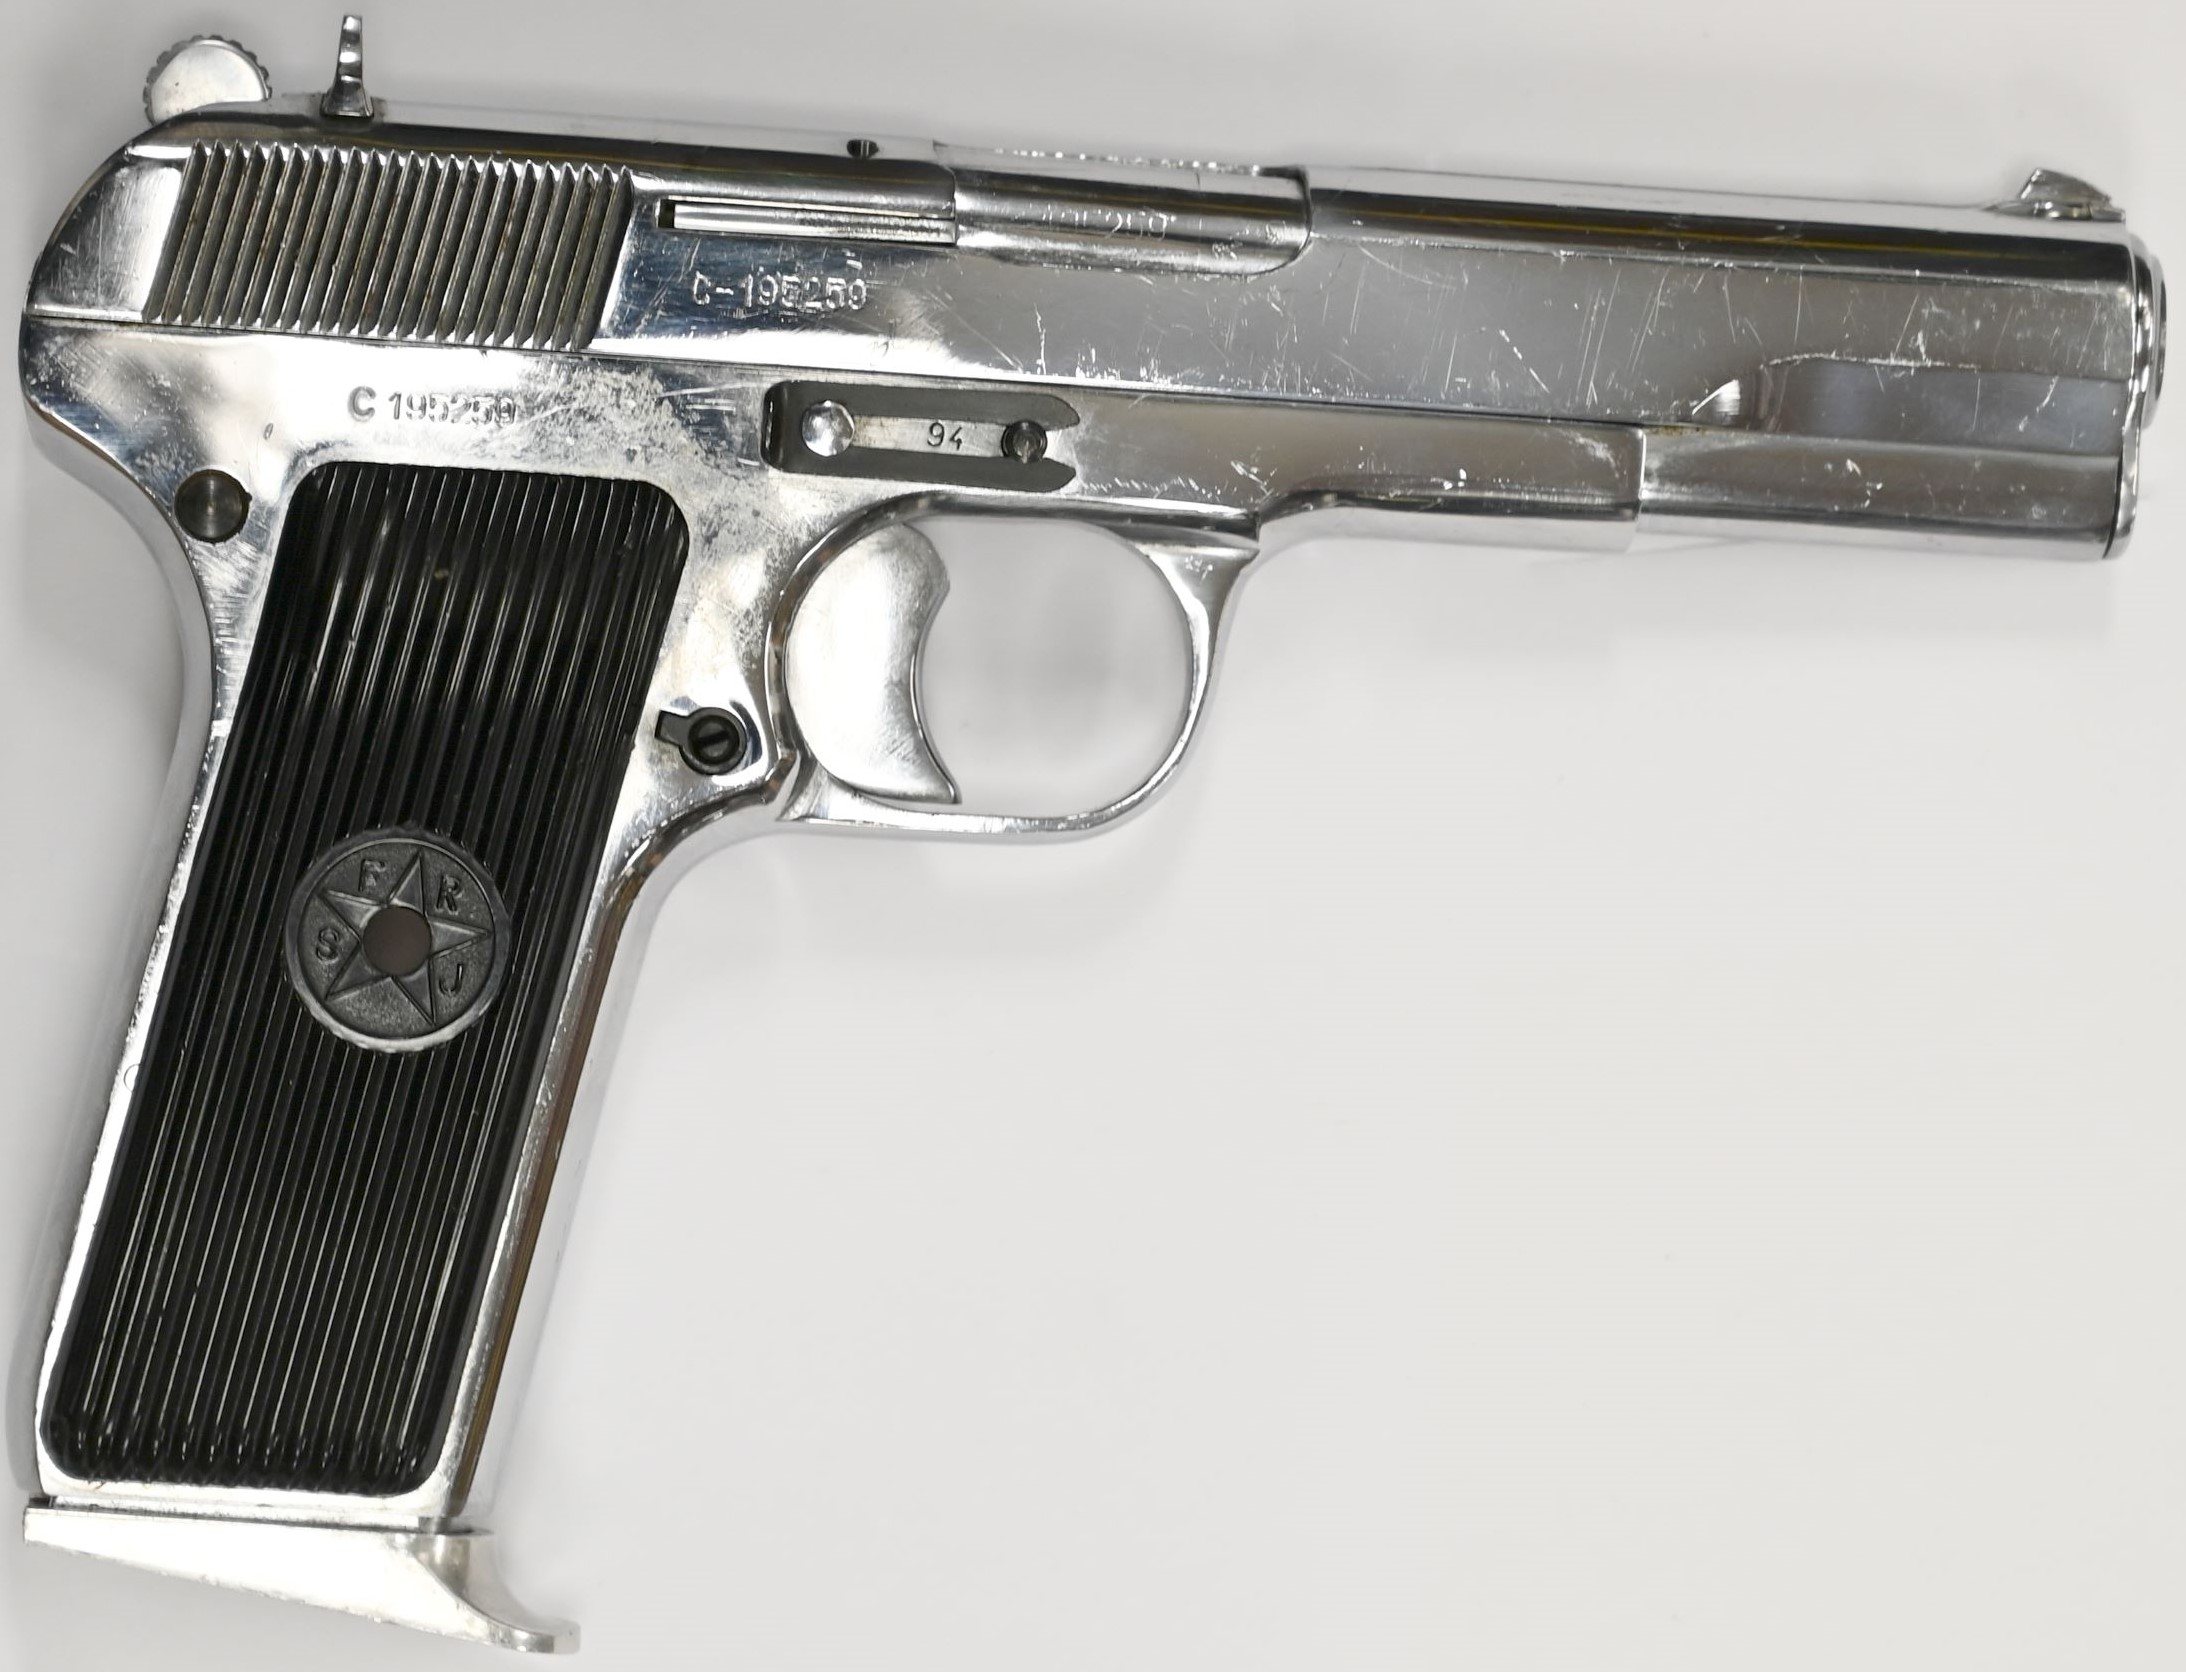 Cee F E Abc F A Fe D A also X Tokarev Ammo besides Adapter furthermore Hard Chrome likewise Cz X Tokarev. on 7 62 x 25 rounds